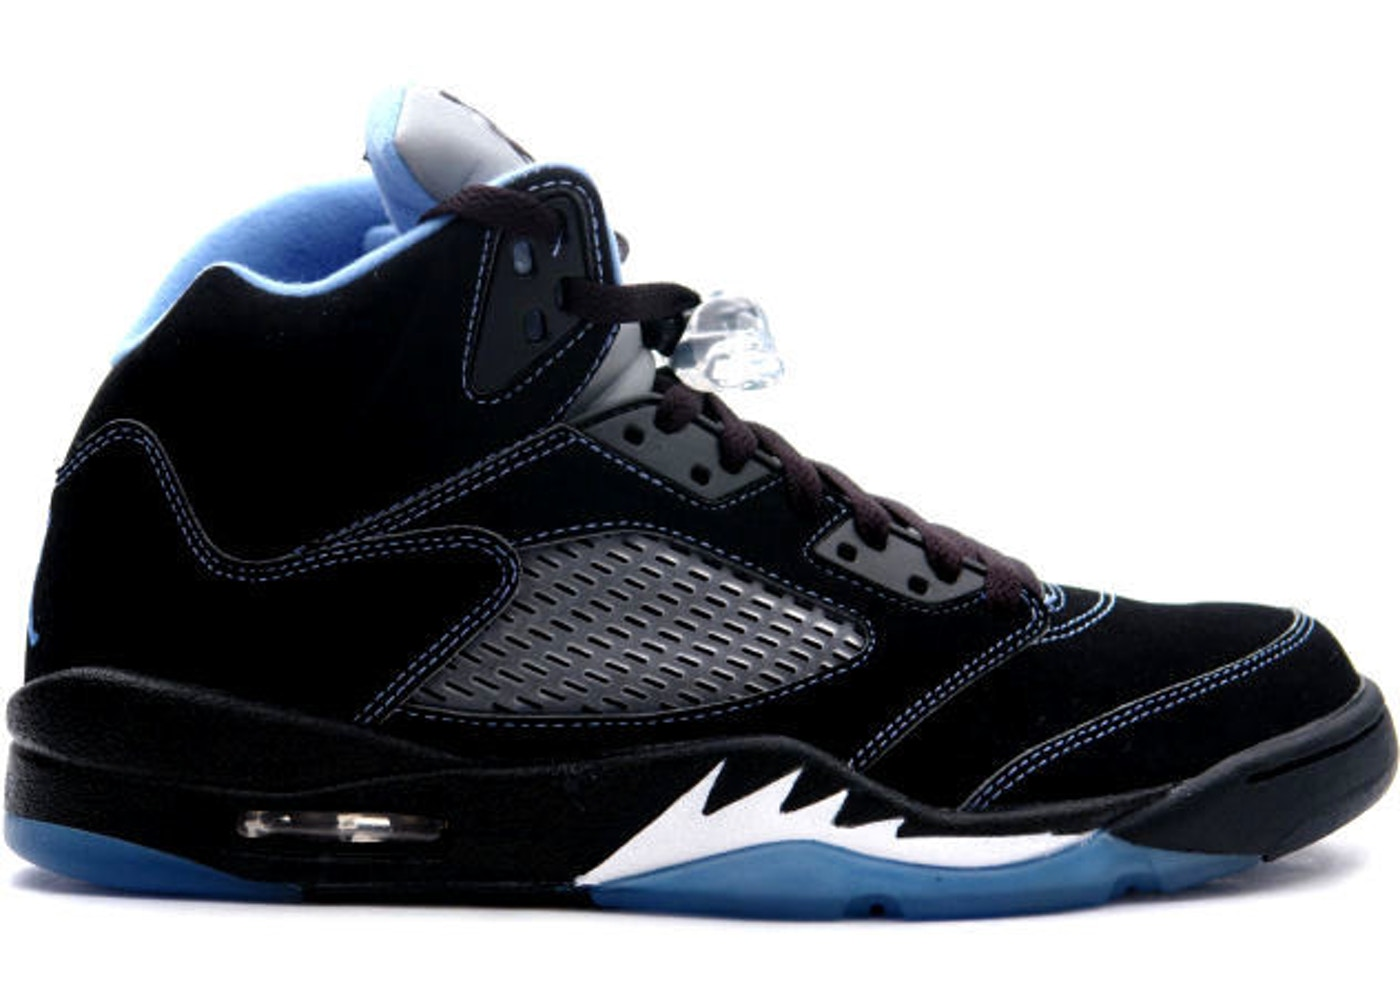 e681e63ee32 Jordan 5 Retro Black/University Blue - 314259-041